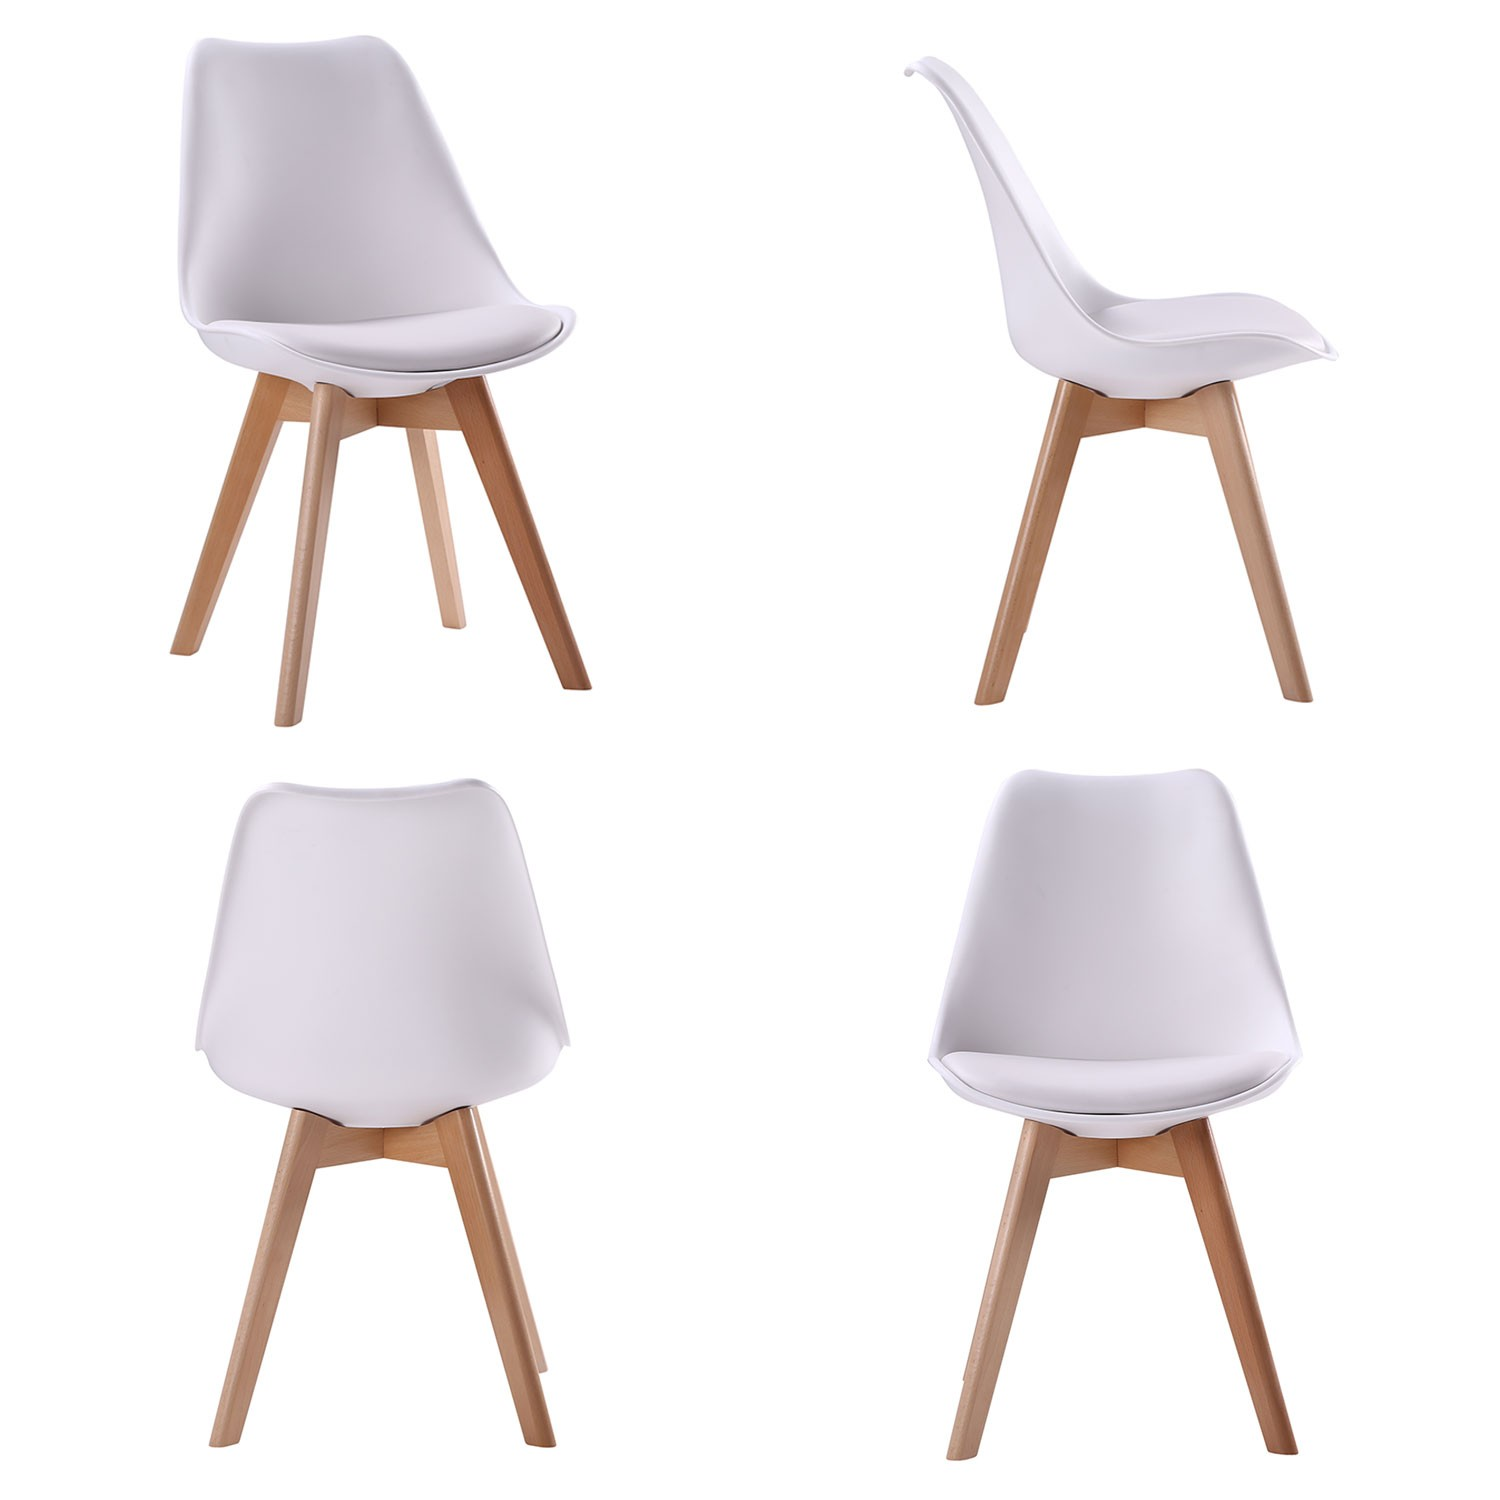 Ensemble table extensible et chaises scandinave blanc NORA